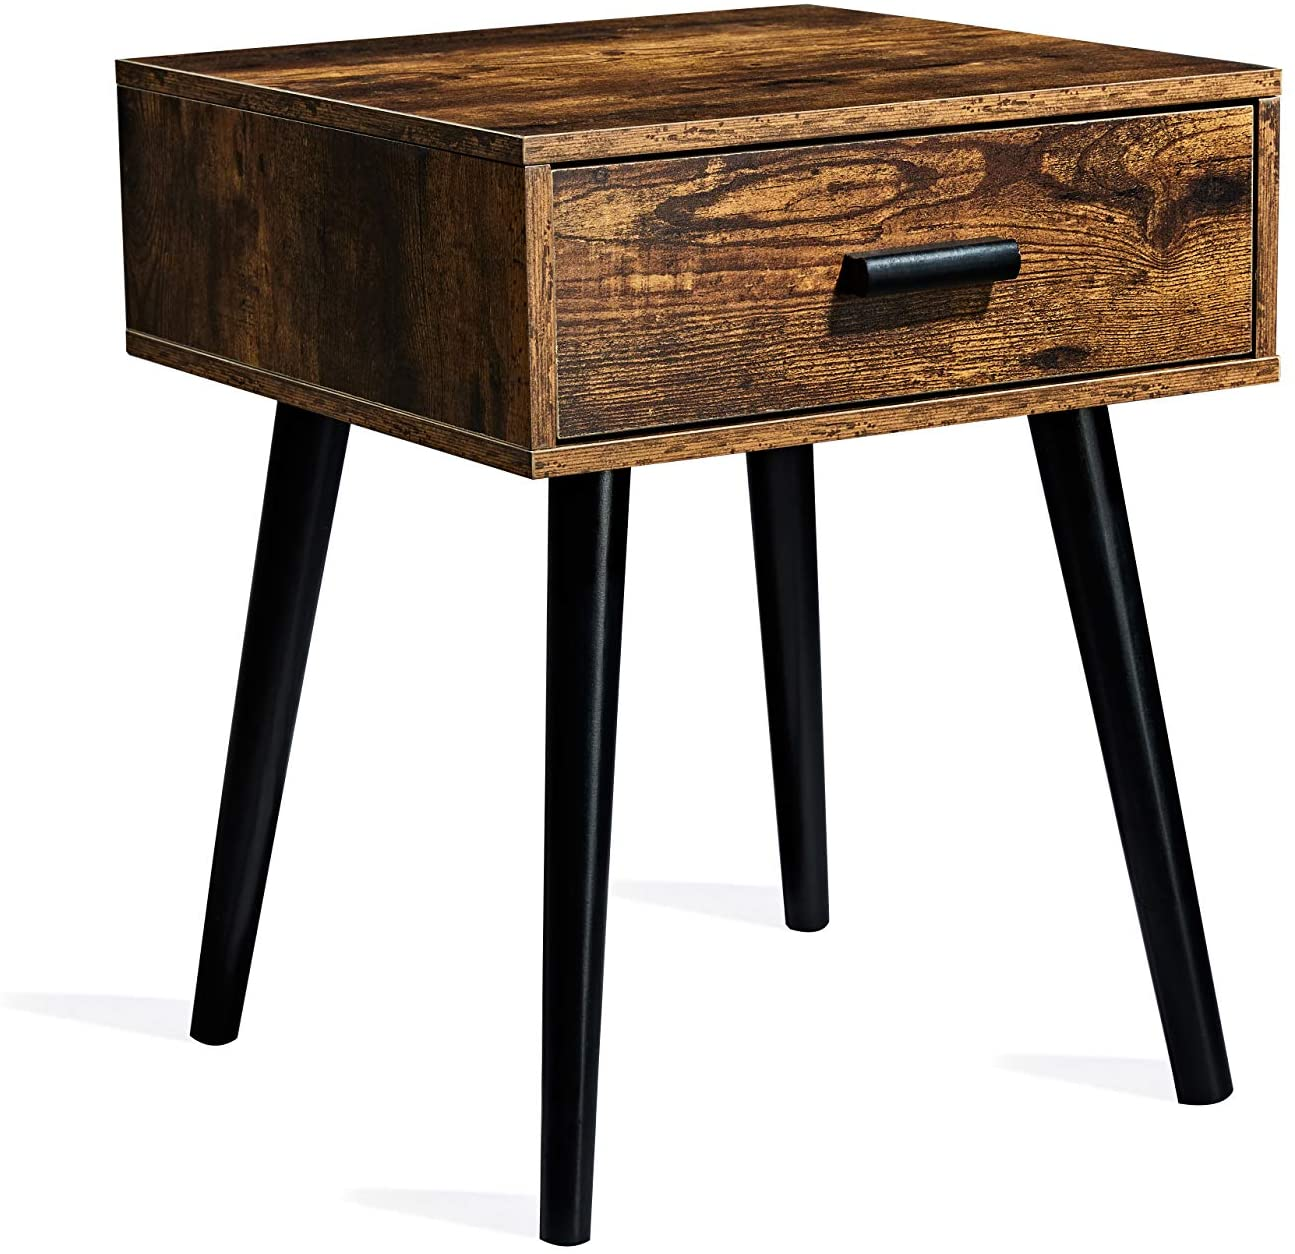 TianLang Nightstand with 1 Drawer,Industrial Side Table,End Table for Living Room,Stable Wooden Legs,Retro Brown LJET001A